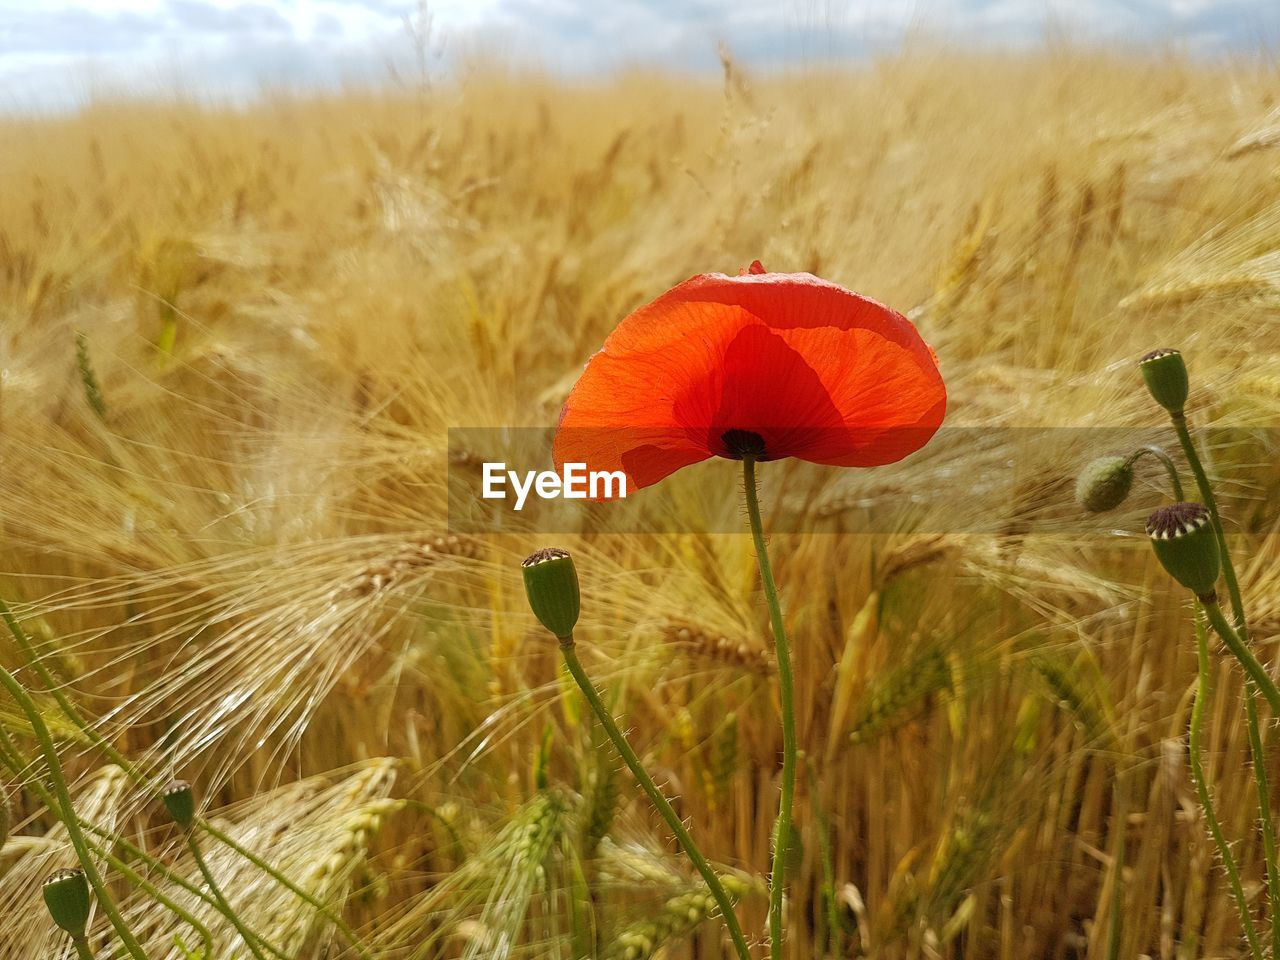 flower, growth, plant, nature, field, beauty in nature, poppy, fragility, flower head, no people, freshness, day, petal, close-up, outdoors, grass, blooming, red